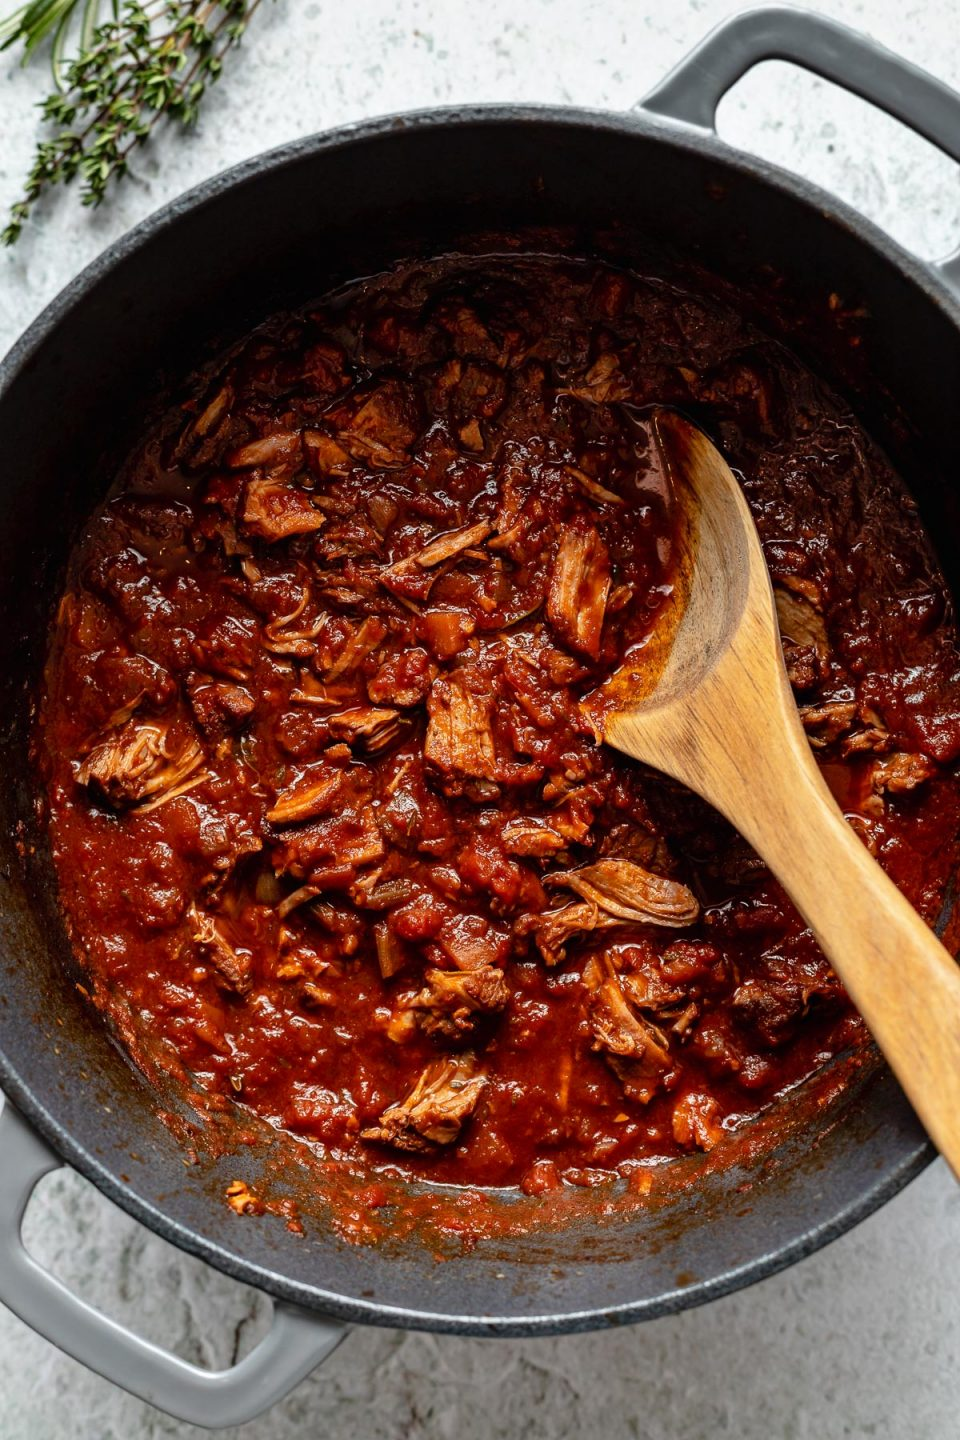 Braised lamb ragu in a large Dutch oven atop a light blue surface. There is a wooden spoon nestled in the ragu sauce & there are fresh herbs next to the pot.